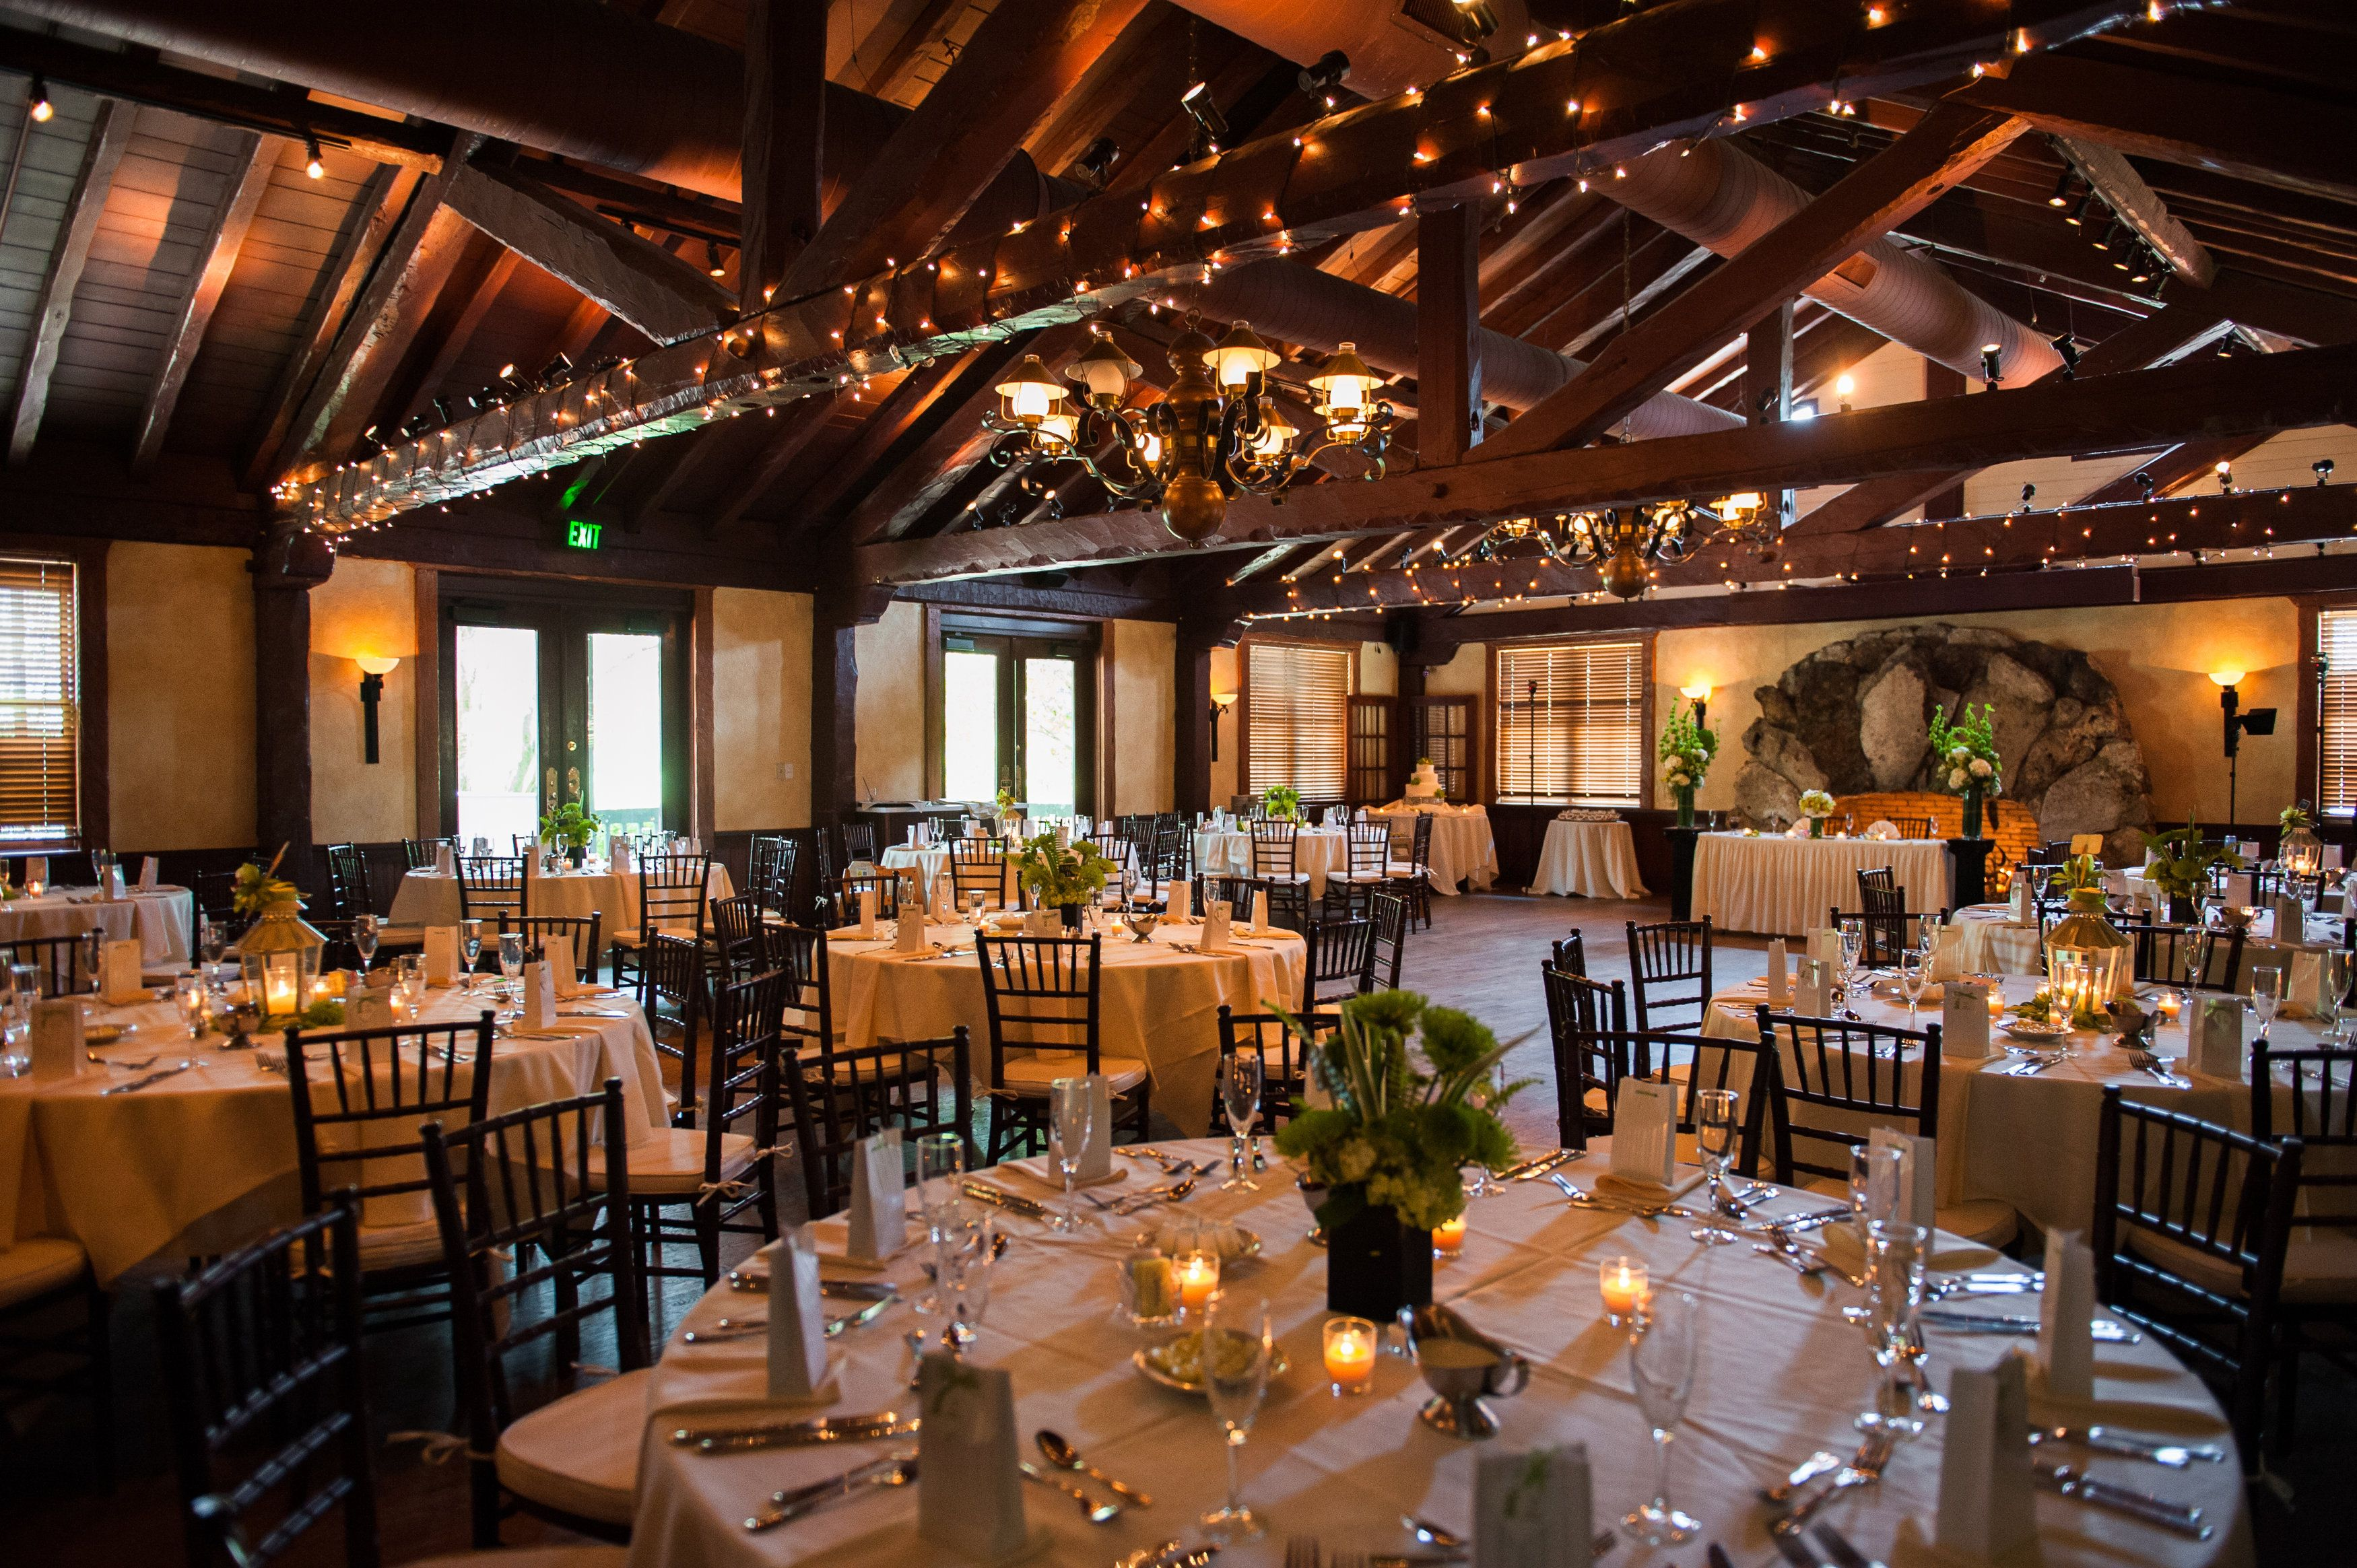 The Dubsdread Ballroom Has Been Voted Best Wedding Venue In Central Florida By Readers Of